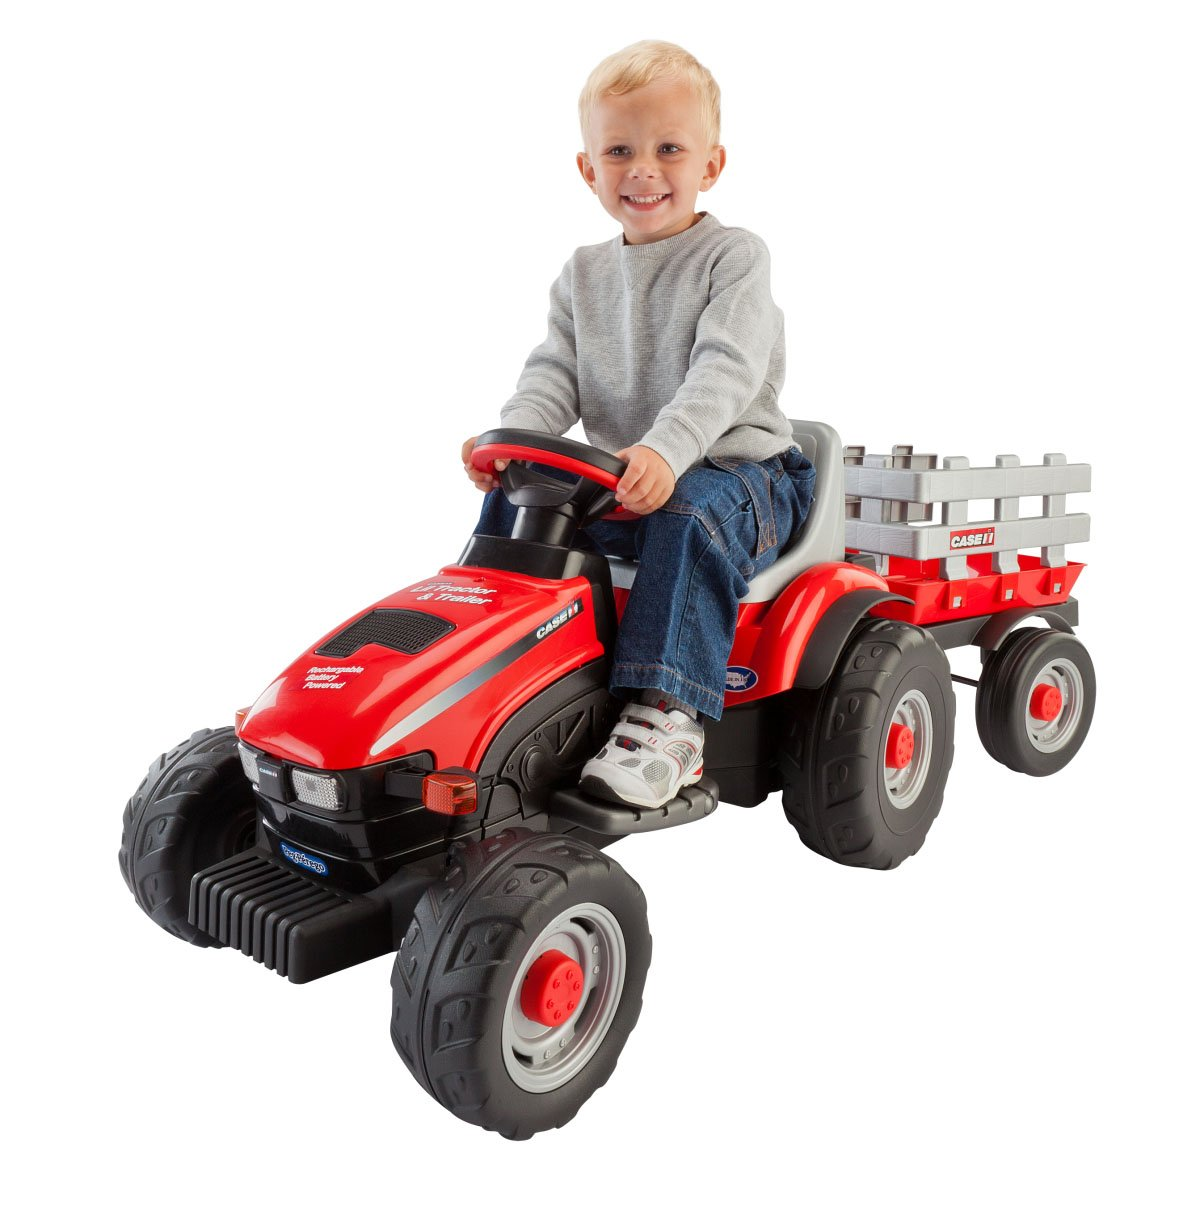 Peg Perego Case IH Little Tractor and Trailer